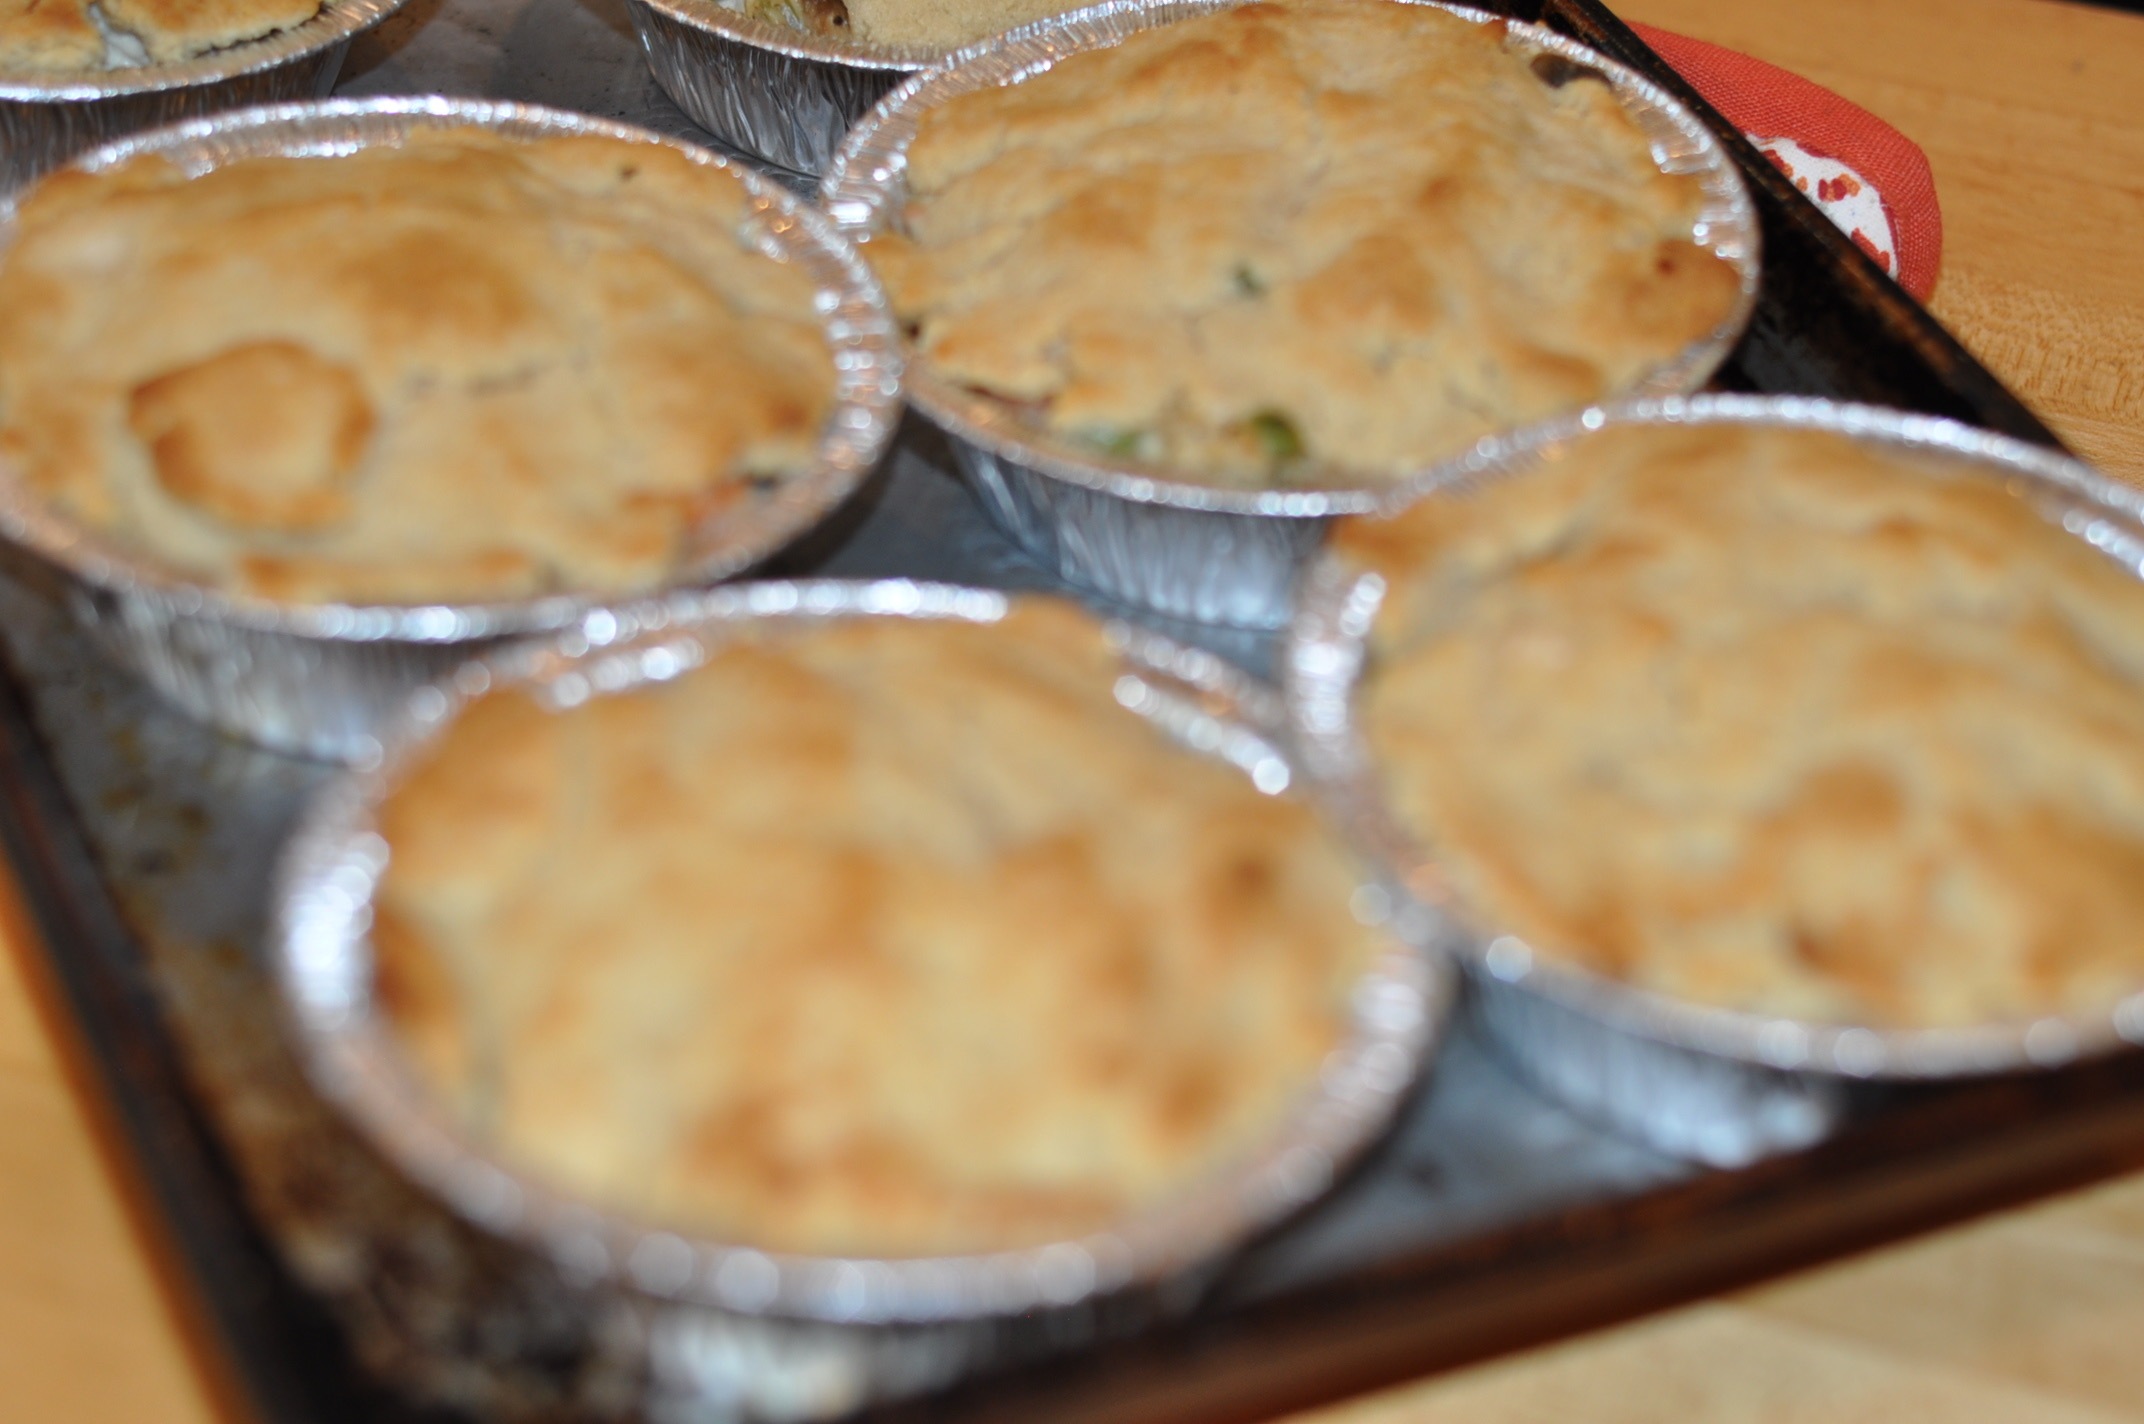 Chicken Pot Pie  INGREDIENTS  4 bone in, skin on chicken breasts 4-5 carrots, peeled and diced 4-5 stalks celery, trimmed and diced 4 T olive oil, butter, or ghee 8 oz sliced mushrooms ¼ cup dry white wine 1 c  cashew cream , plus additional if necessary 1 cup frozen green peas ½ t thyme  Biscuit dough  (awesome recipe from comfybelly.com)  DIRECTIONS  1. Preheat oven to 350. Put the chicken breasts skin side up on a sheet pan and season the chicken with olive oil, then salt and pepper. 2. Bake 35 to 40 minutes until internal temperature (using an instant read thermometer) is 160 degrees. 3. Remove from the oven, allow to cool for an hour. 4. Remove the skin from the breasts and discard. Remove the breasts to a plate. 5. Tilt the baking sheet, catching all of the liquid broth and fat that accumulated while the chicken was cooking. This stuff is delicious and will make your pot pie taste better. 6. When the chicken is cool, shred it with your hands. Save the bones for chicken broth. 7. Chop the chicken into smallish pieces and put into a very big bowl. 8. In a large skillet over medium heat, heat 2 T butter, ghee, or olive oil. Add the celery and carrots and saute until softened but not mushy. Salt and pepper them while they're cooking. 9. Add to the bowl with the chicken. 10. In the same skillet, heat 2 tablespoons more oil or butter and saute the mushroom slices until they give up their juice and become softened. Then pour in the wine and cook that down. 11.Add to the bowl with the chicken. 12. Now stir in the cashew cream, the reserved chicken fat/broth, and salt and pepper. 13. Sprinkle in the thyme and frozen peas. Add more cashew cream if it's not creamy enough. 14. Stir everything together really well. 15. Mound the mixture into individual foil pie pans (makes for easy freezing of lots of servings). 16. Break off a ball of biscuit dough (a little bigger than golf ball size) and work it with your hands to flatten it, and then put this on top of each little pie (it doesn't have to be perfect and it's okay if it doesn't completely cover it). 17. Put each pie onto a baking sheet and load the whole pan into the oven. Bake for 20 minutes or until the biscuit dough is puffed and golden. 18. Enjoy right away or cool and freeze for later.  Makes 8-10 pies, depending on the size of pie pan you have.